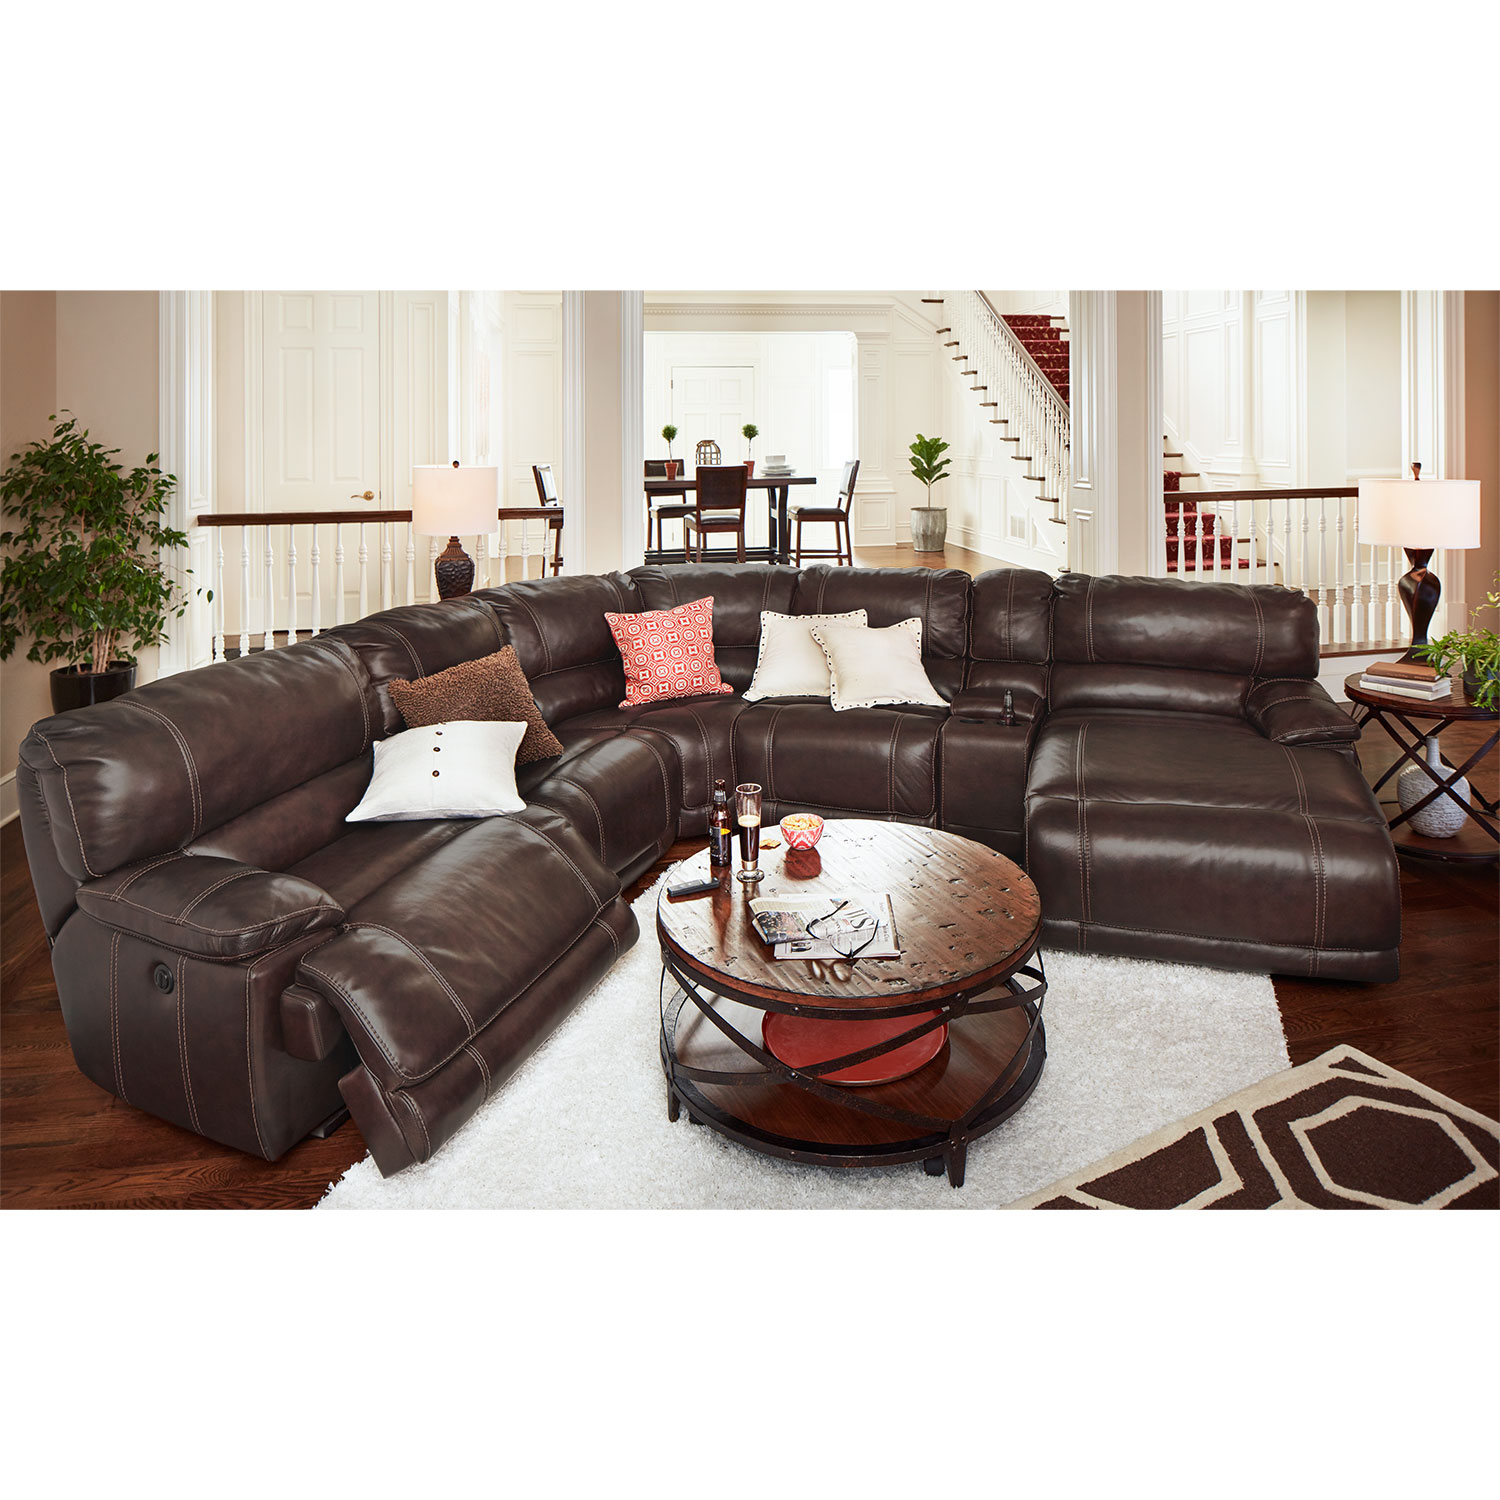 st malo 6piece power reclining sectional with rightfacing chaise brown by one80